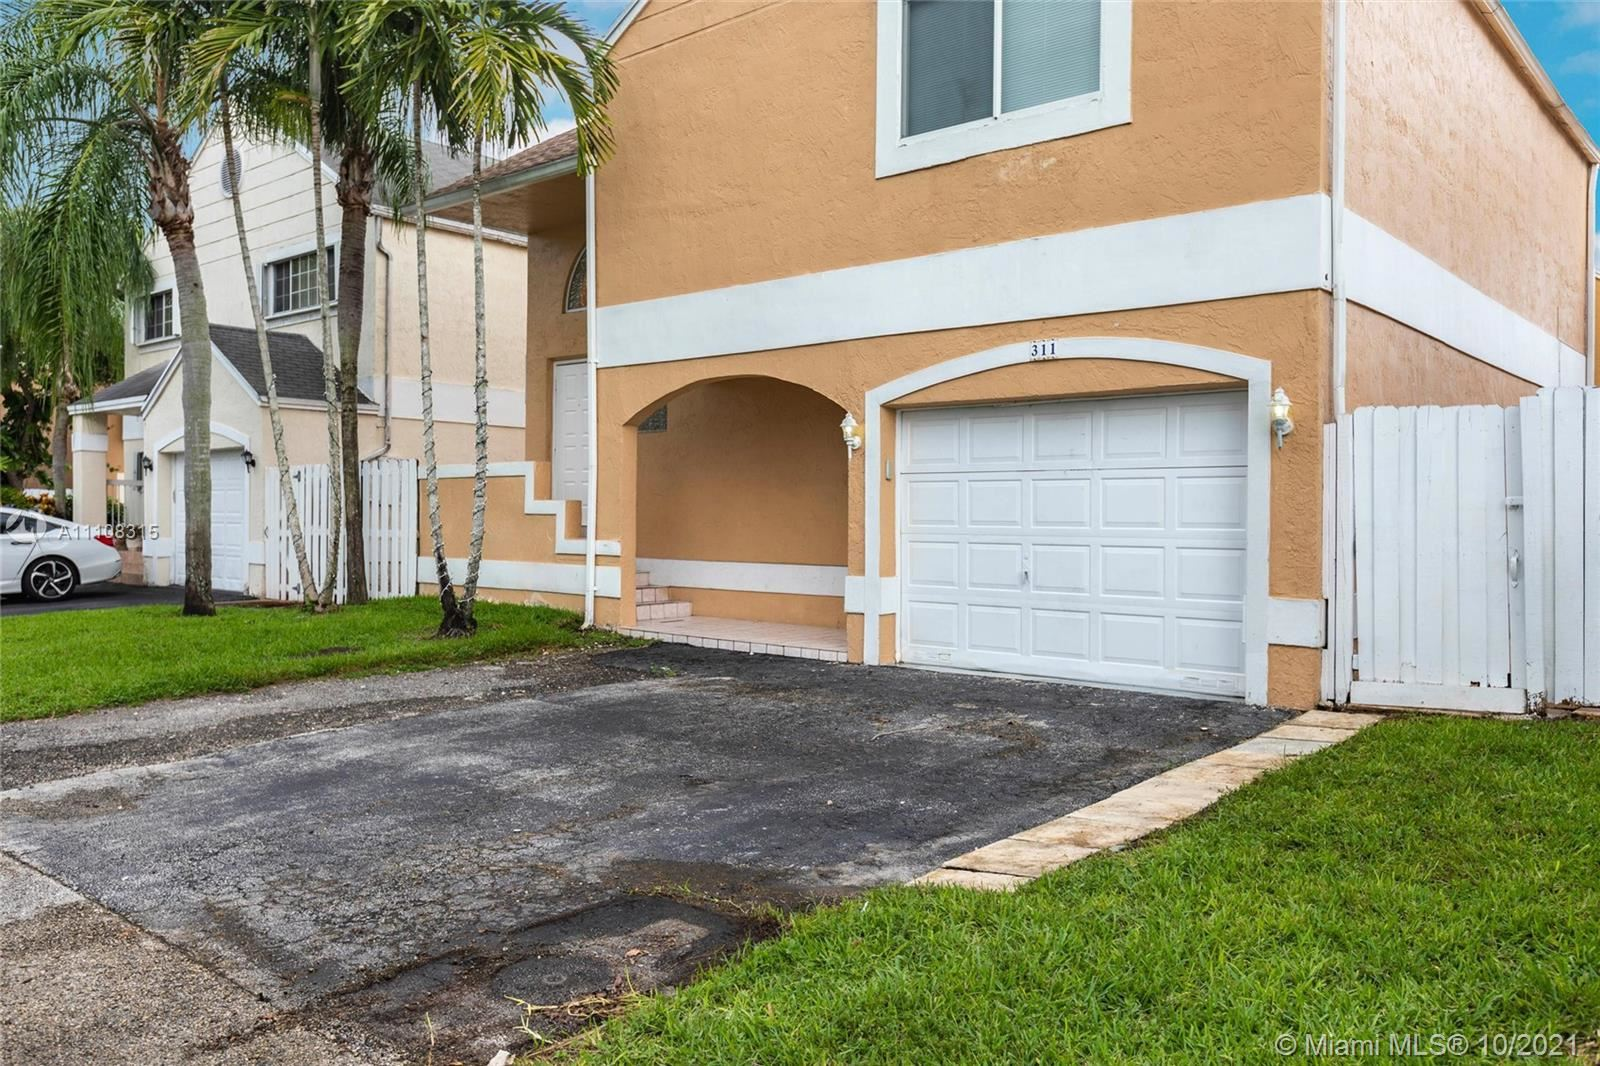 Photo of 311 NW 102 Ave, Pembroke Pines, FL 33026 (MLS # A11108315)